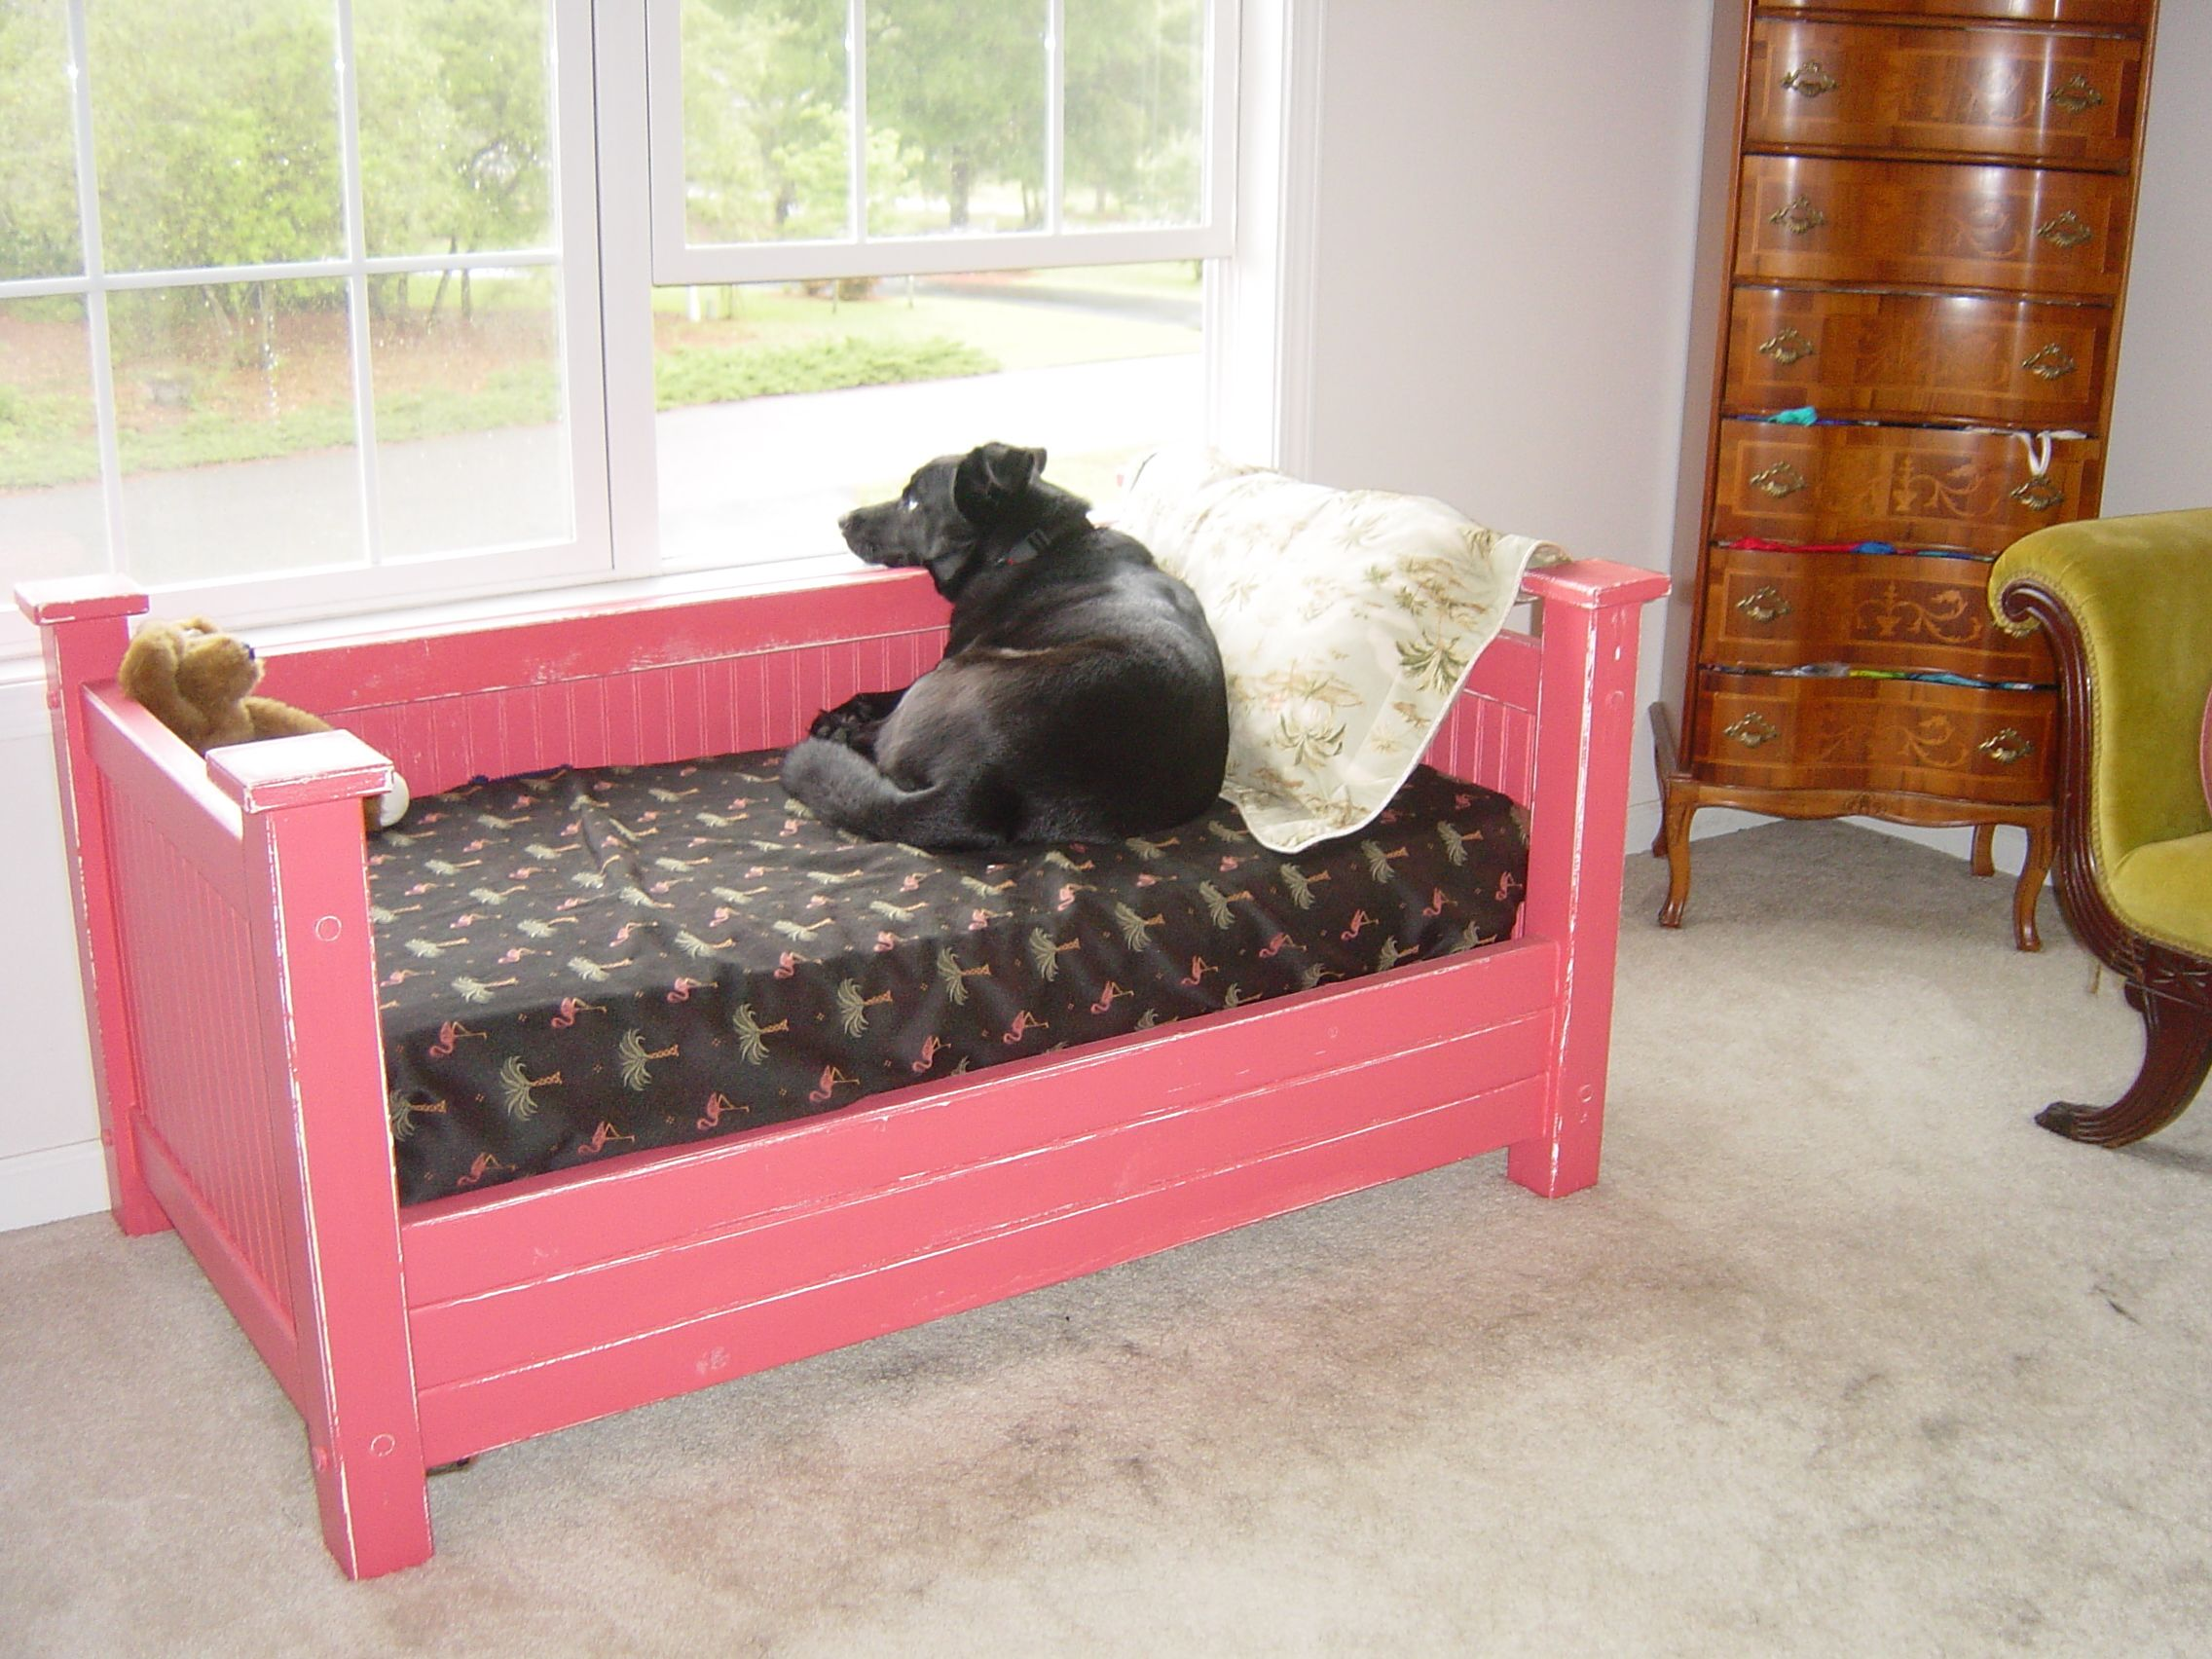 A Crib Size Pet Bed Made For Out Dog Sinatra. Crib